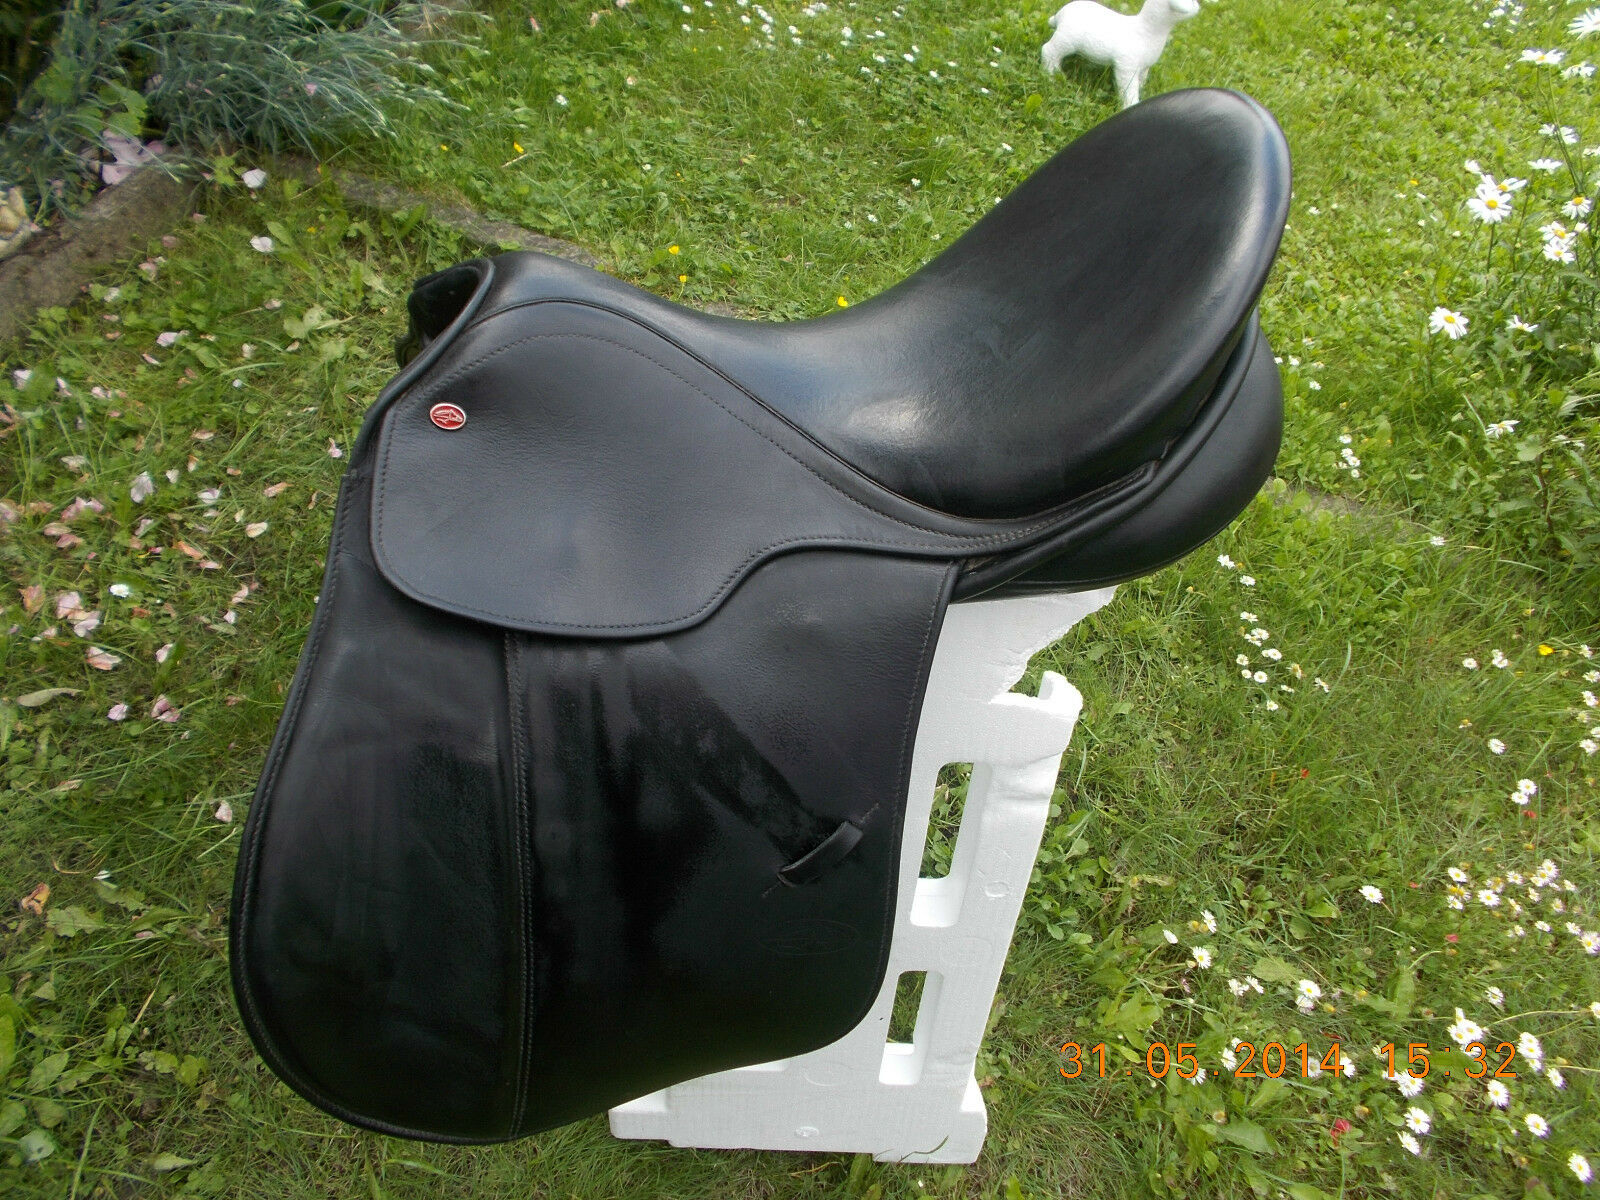 COURBETTE MAGIC Swiss and Saddles VSS,Normale Kammer mit Sattelschoner,wie NEU